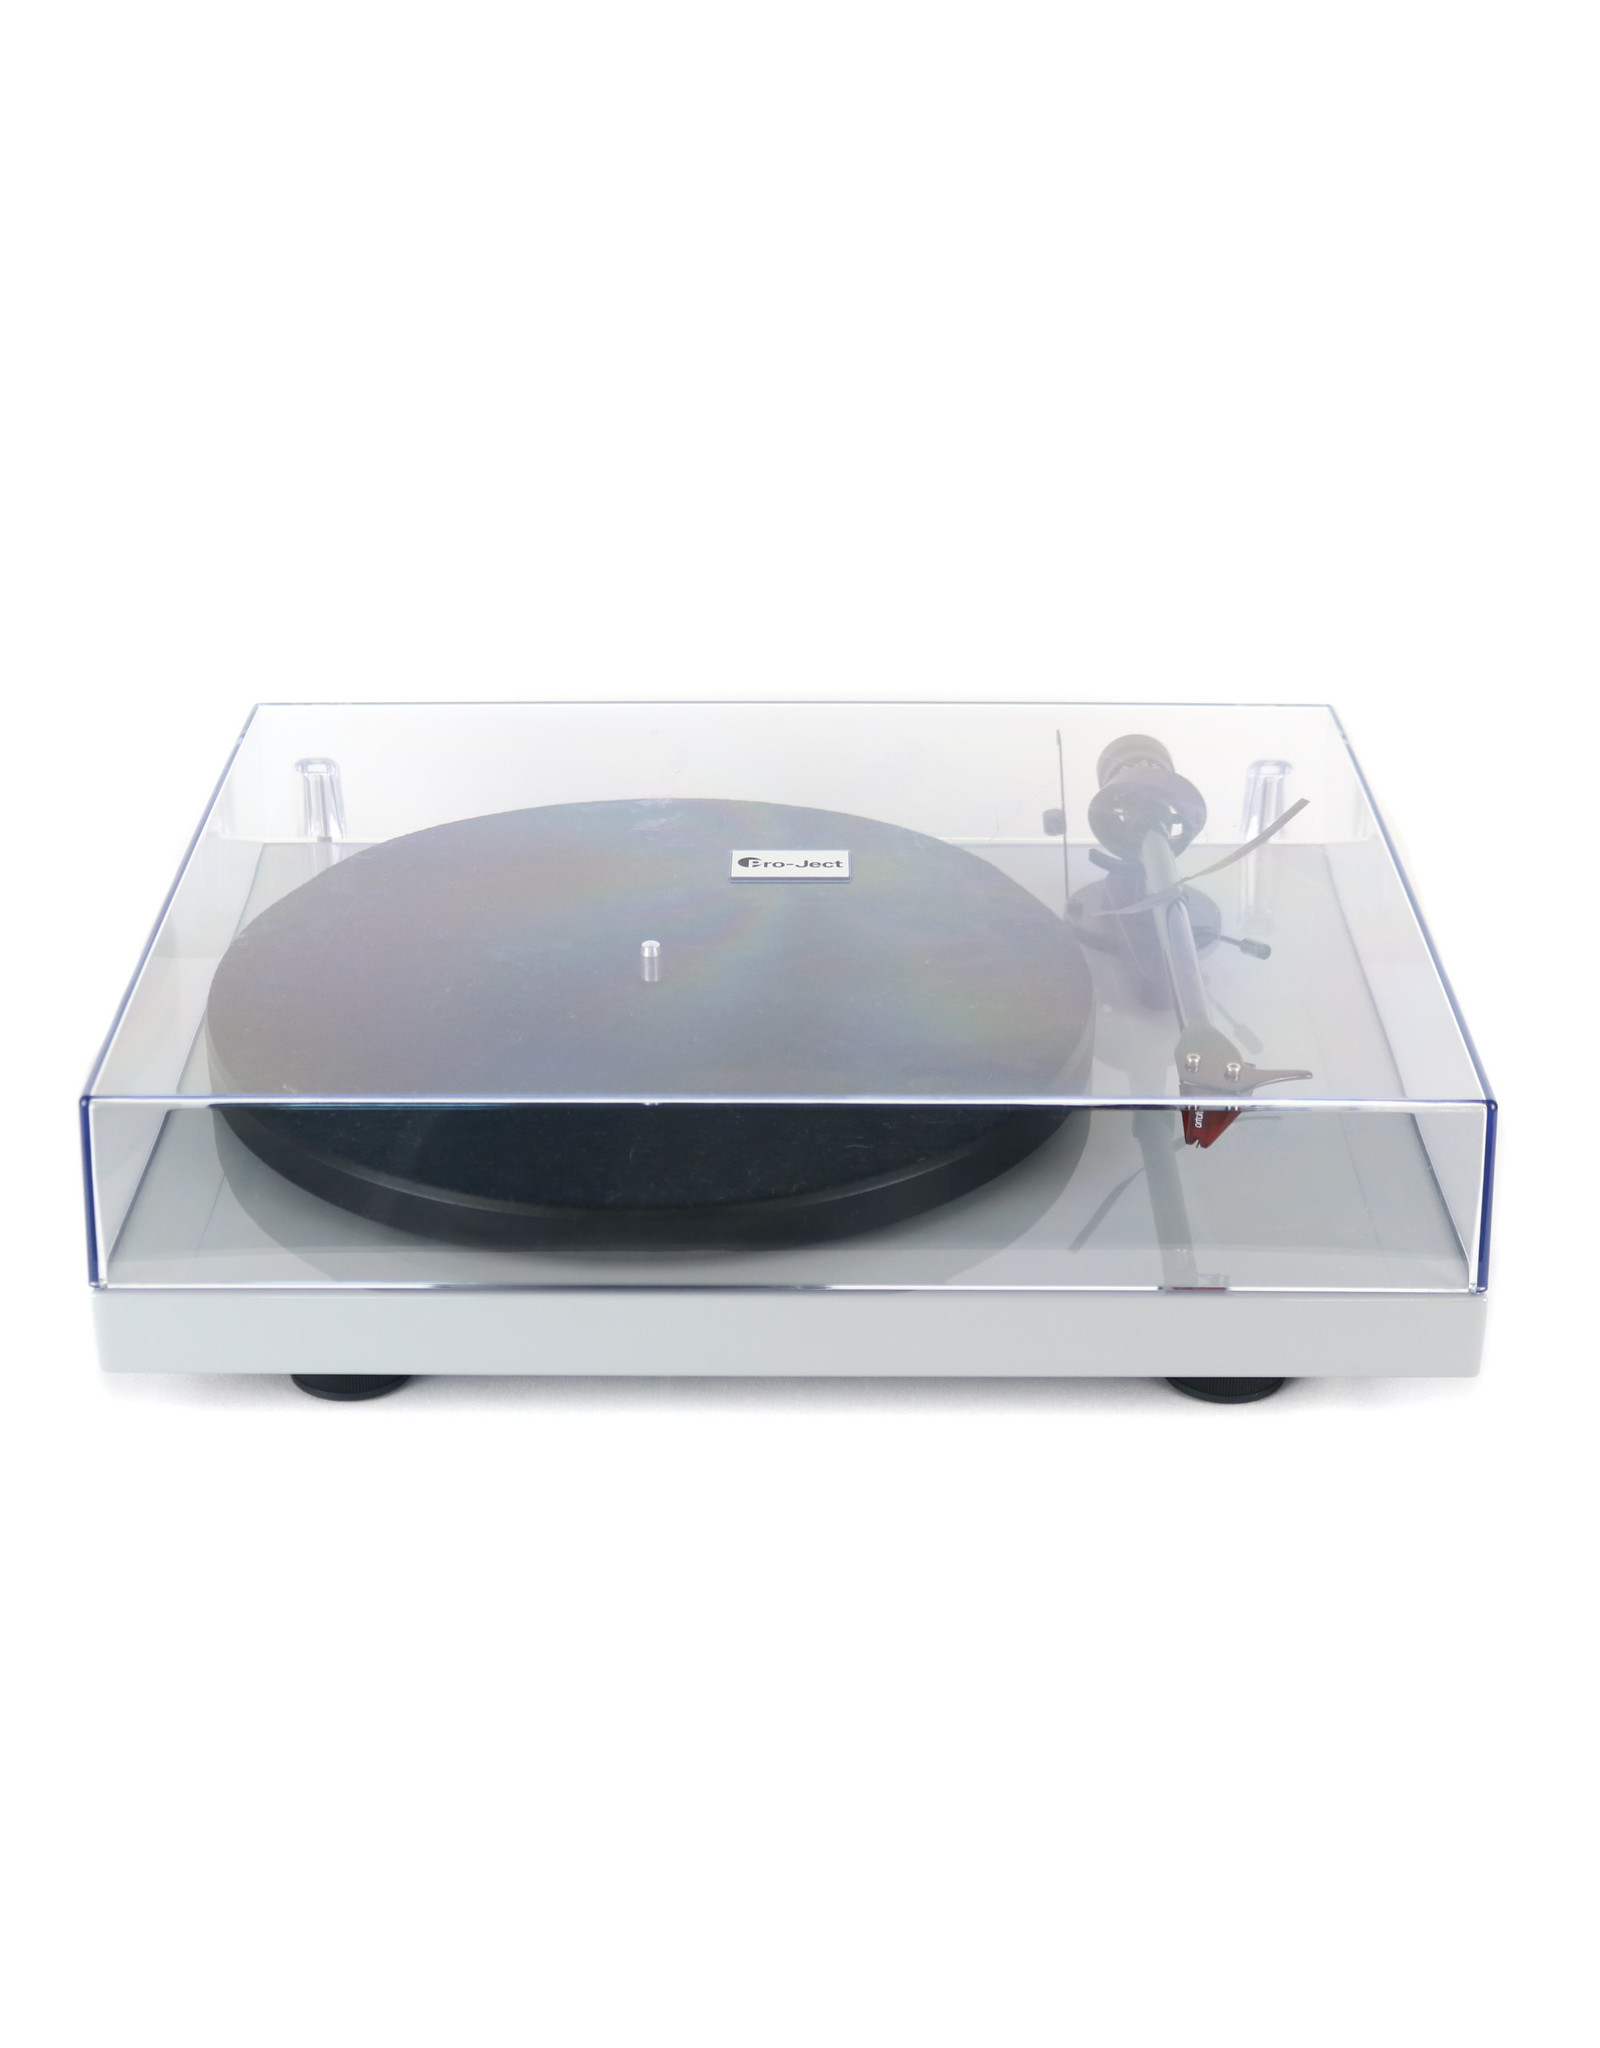 Pro-Ject Pro-Ject Debut Carbon DC Turntable Light Grey USED